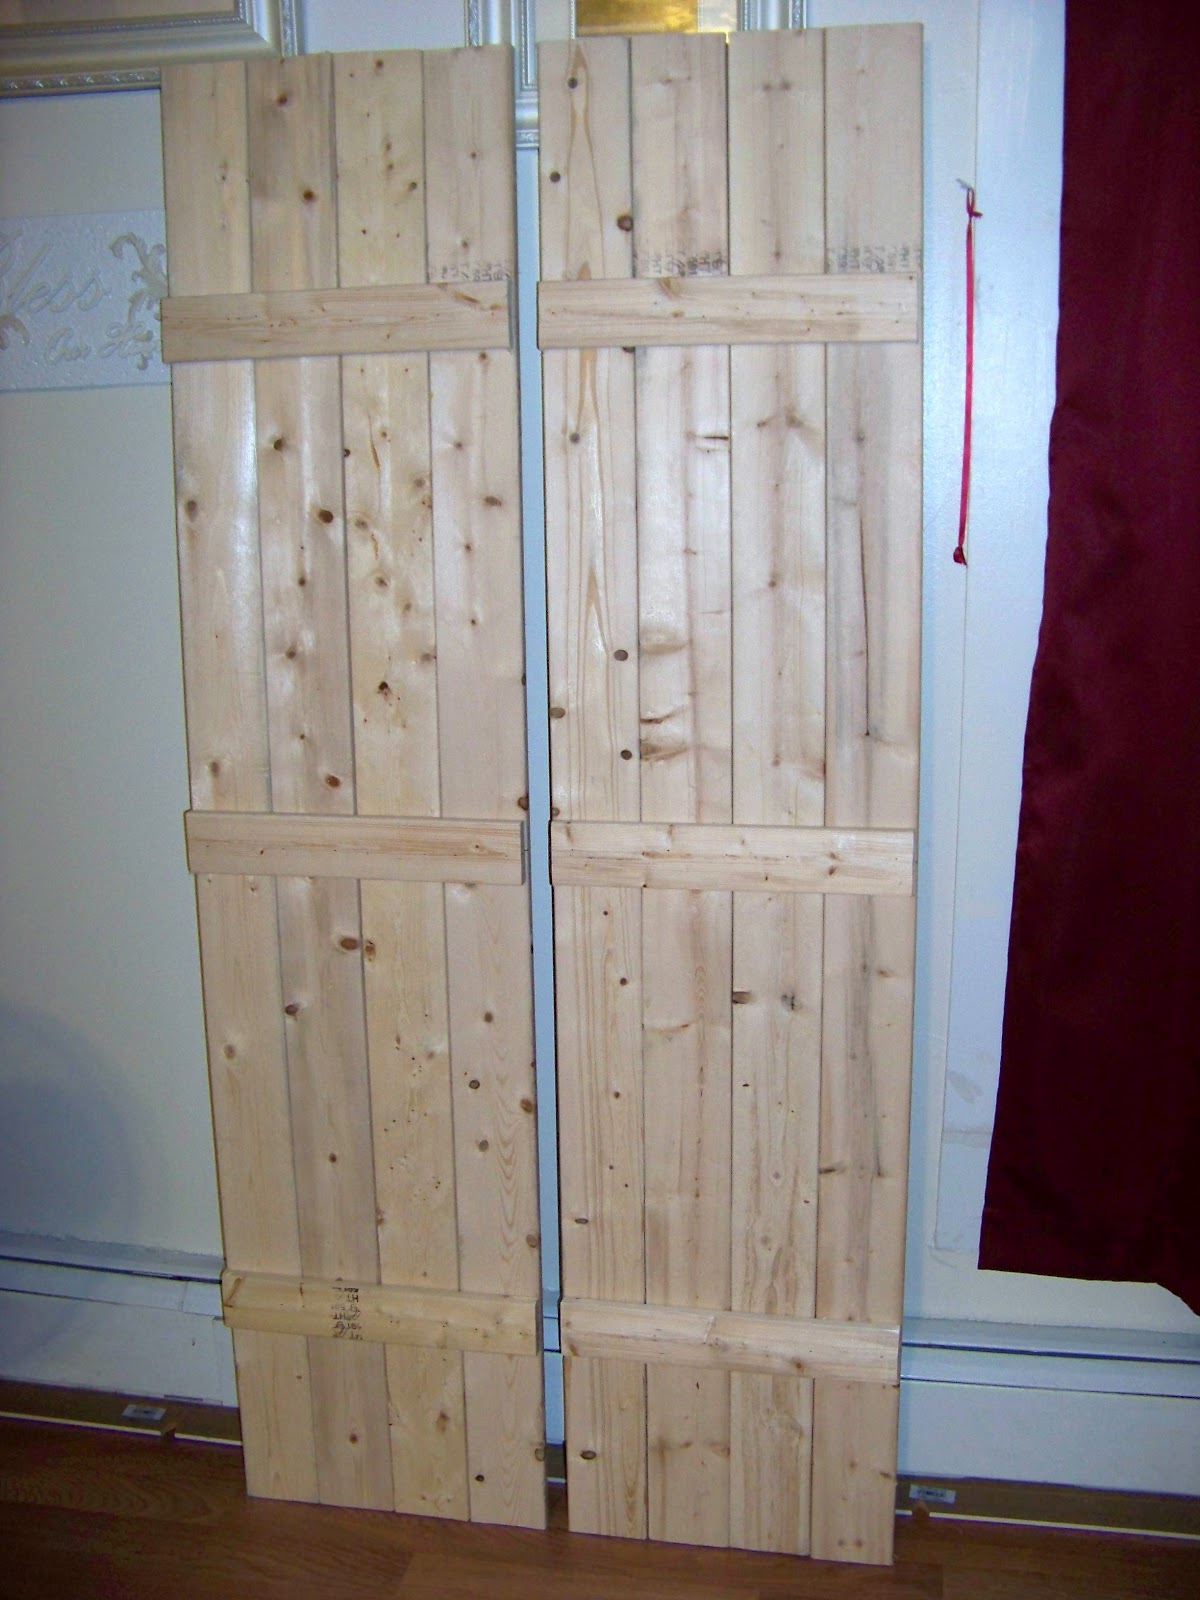 Beautify my home make your own board and batten shutters for Make your own shutters